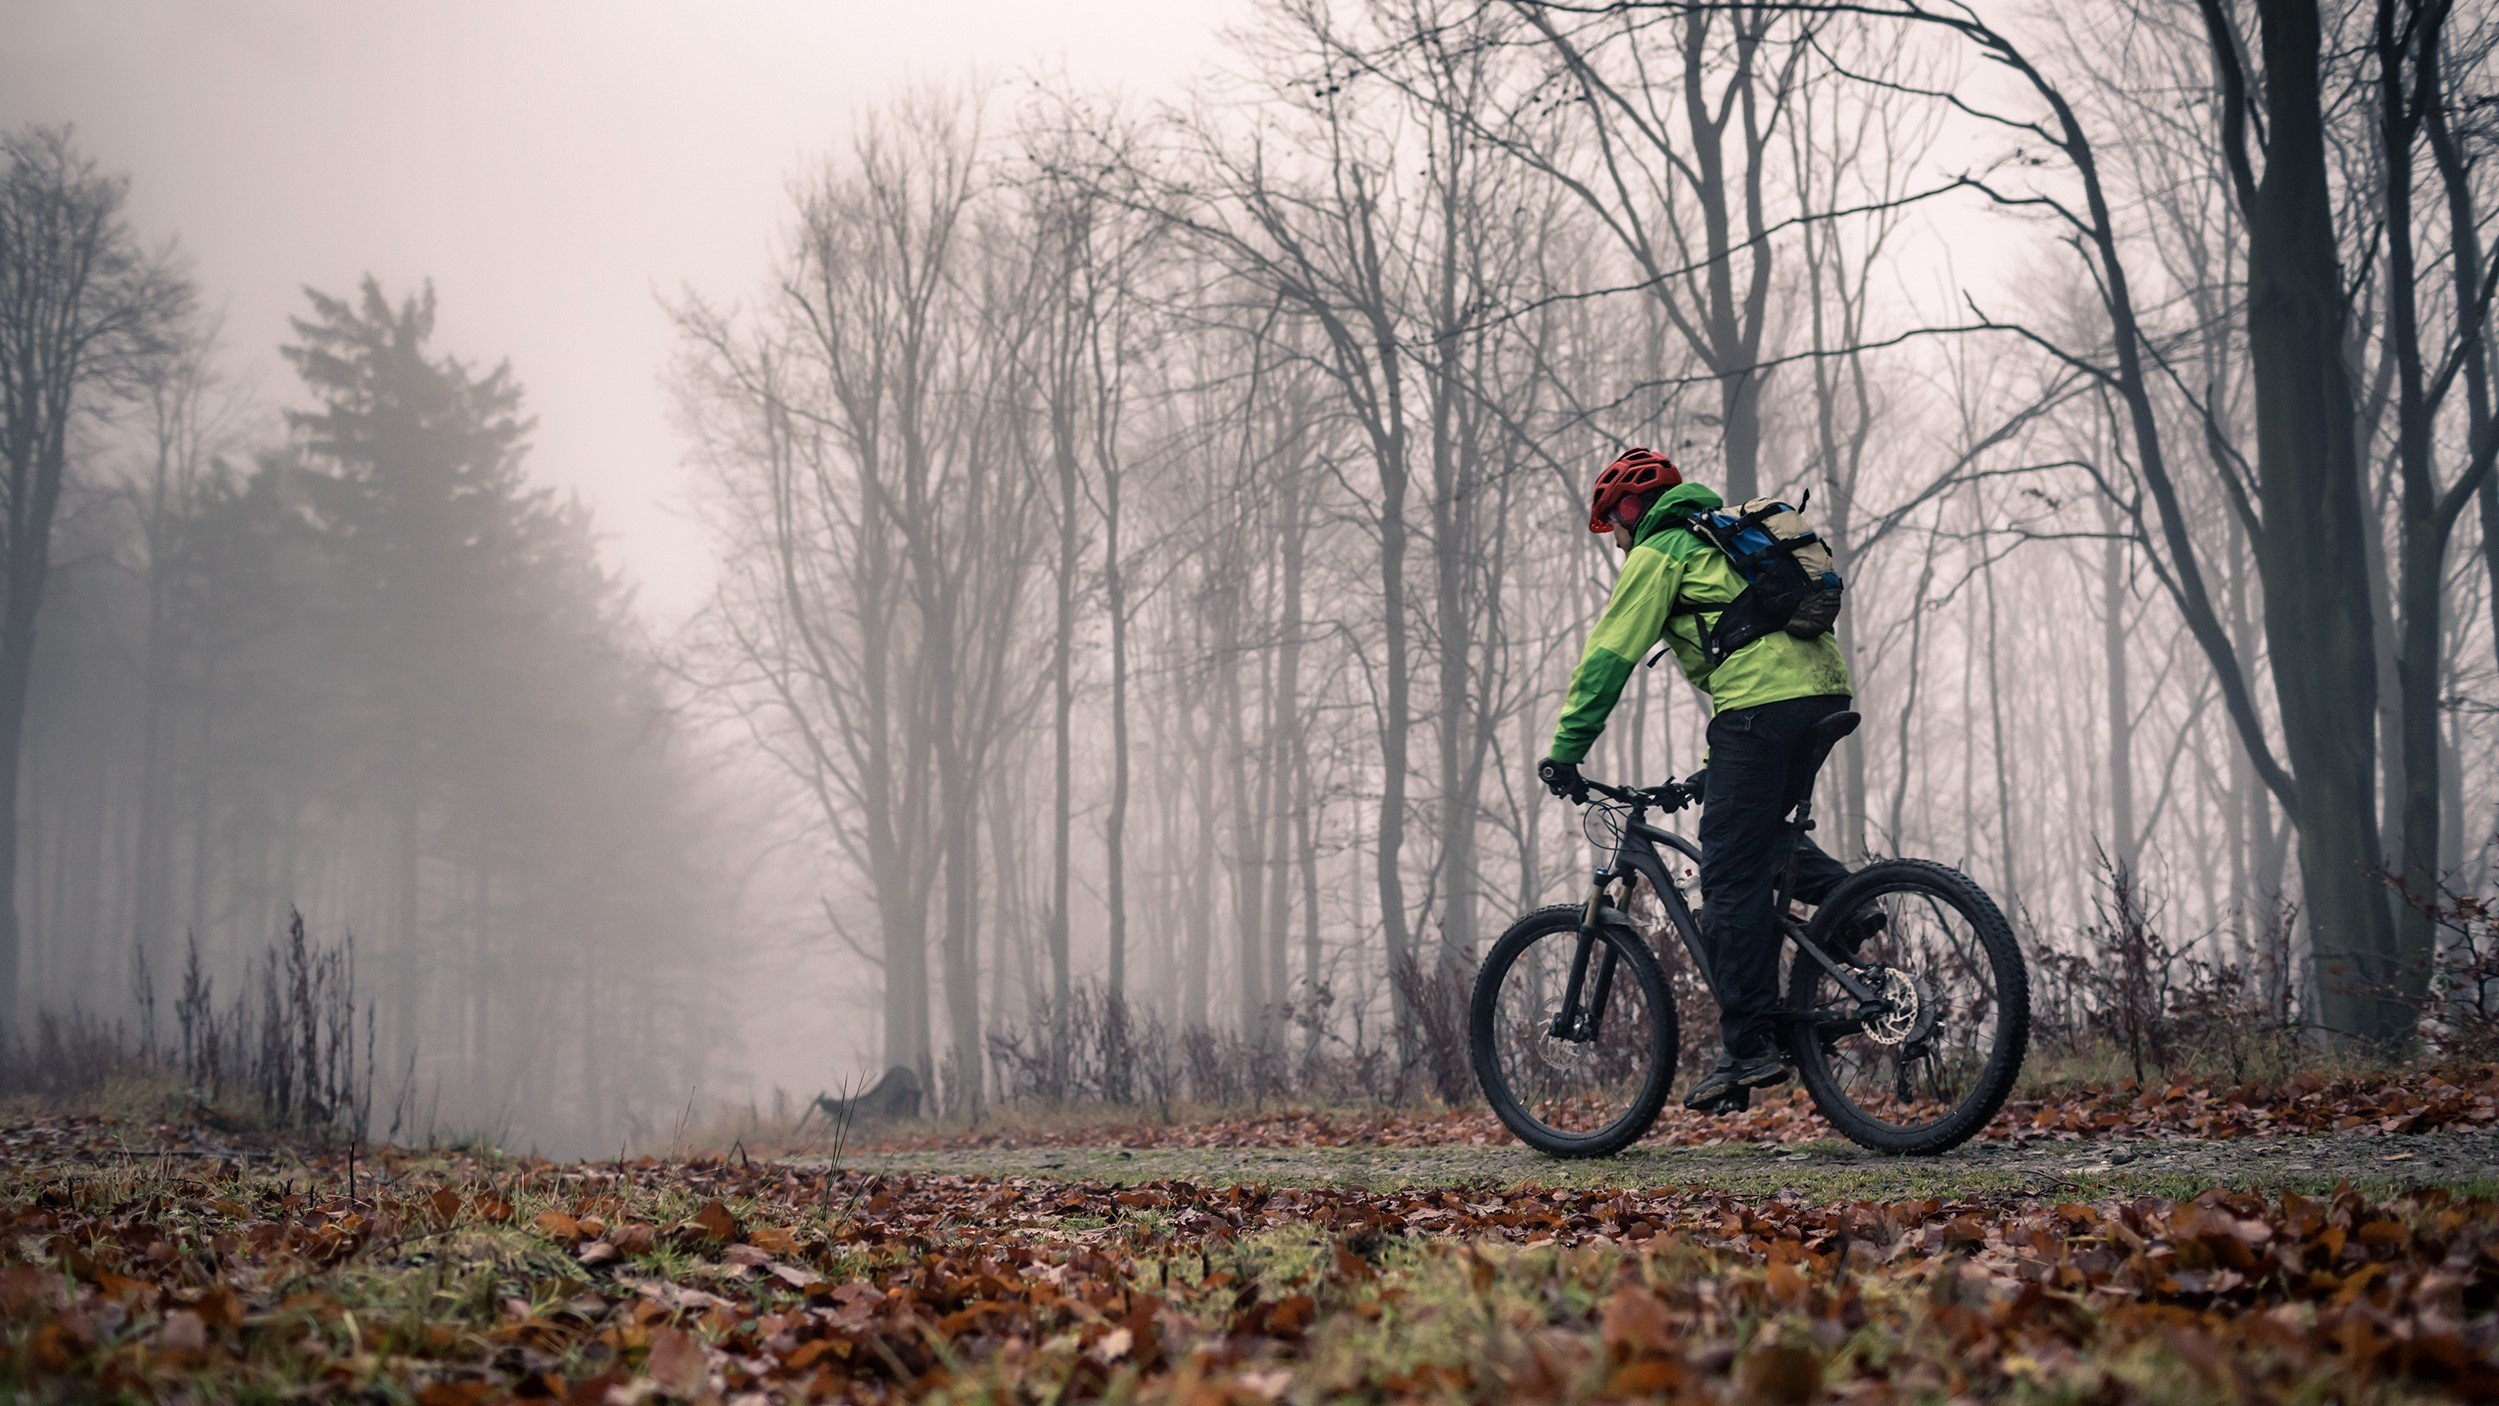 Best cycling jacket: Stay dry and warm whatever the weather